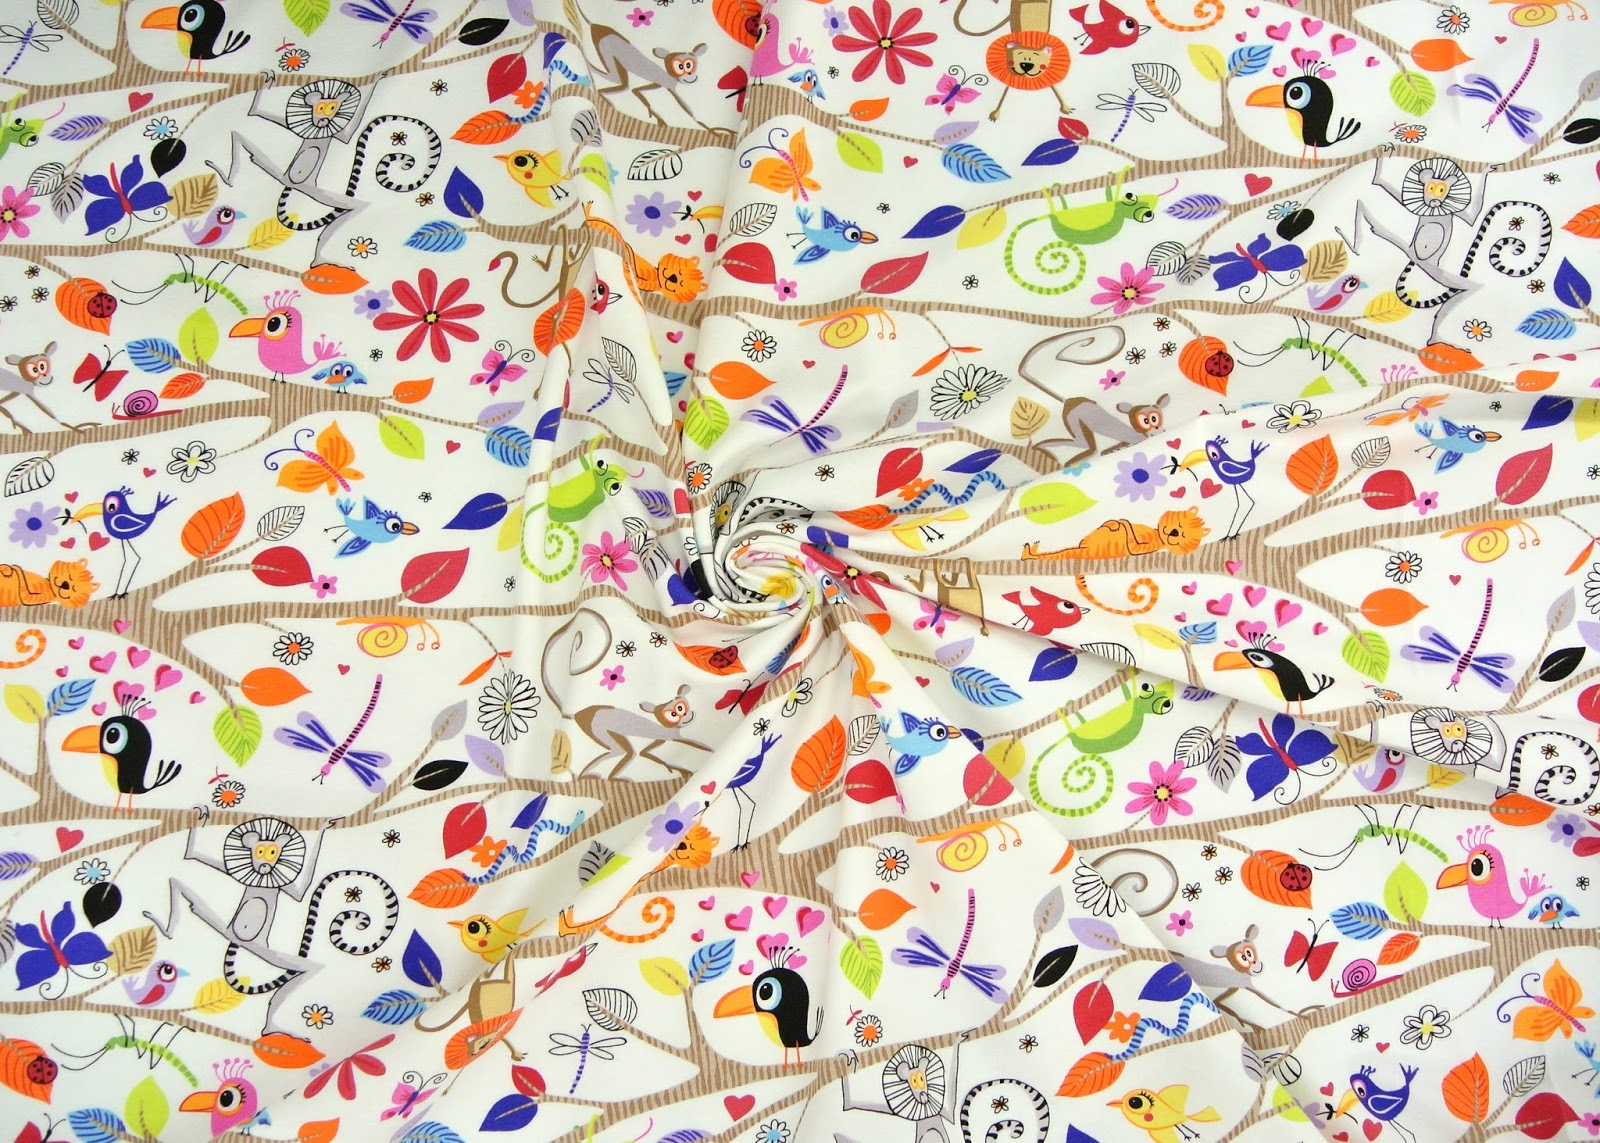 Treadle yard goods cotton knit prints for Knit fabric childrens prints